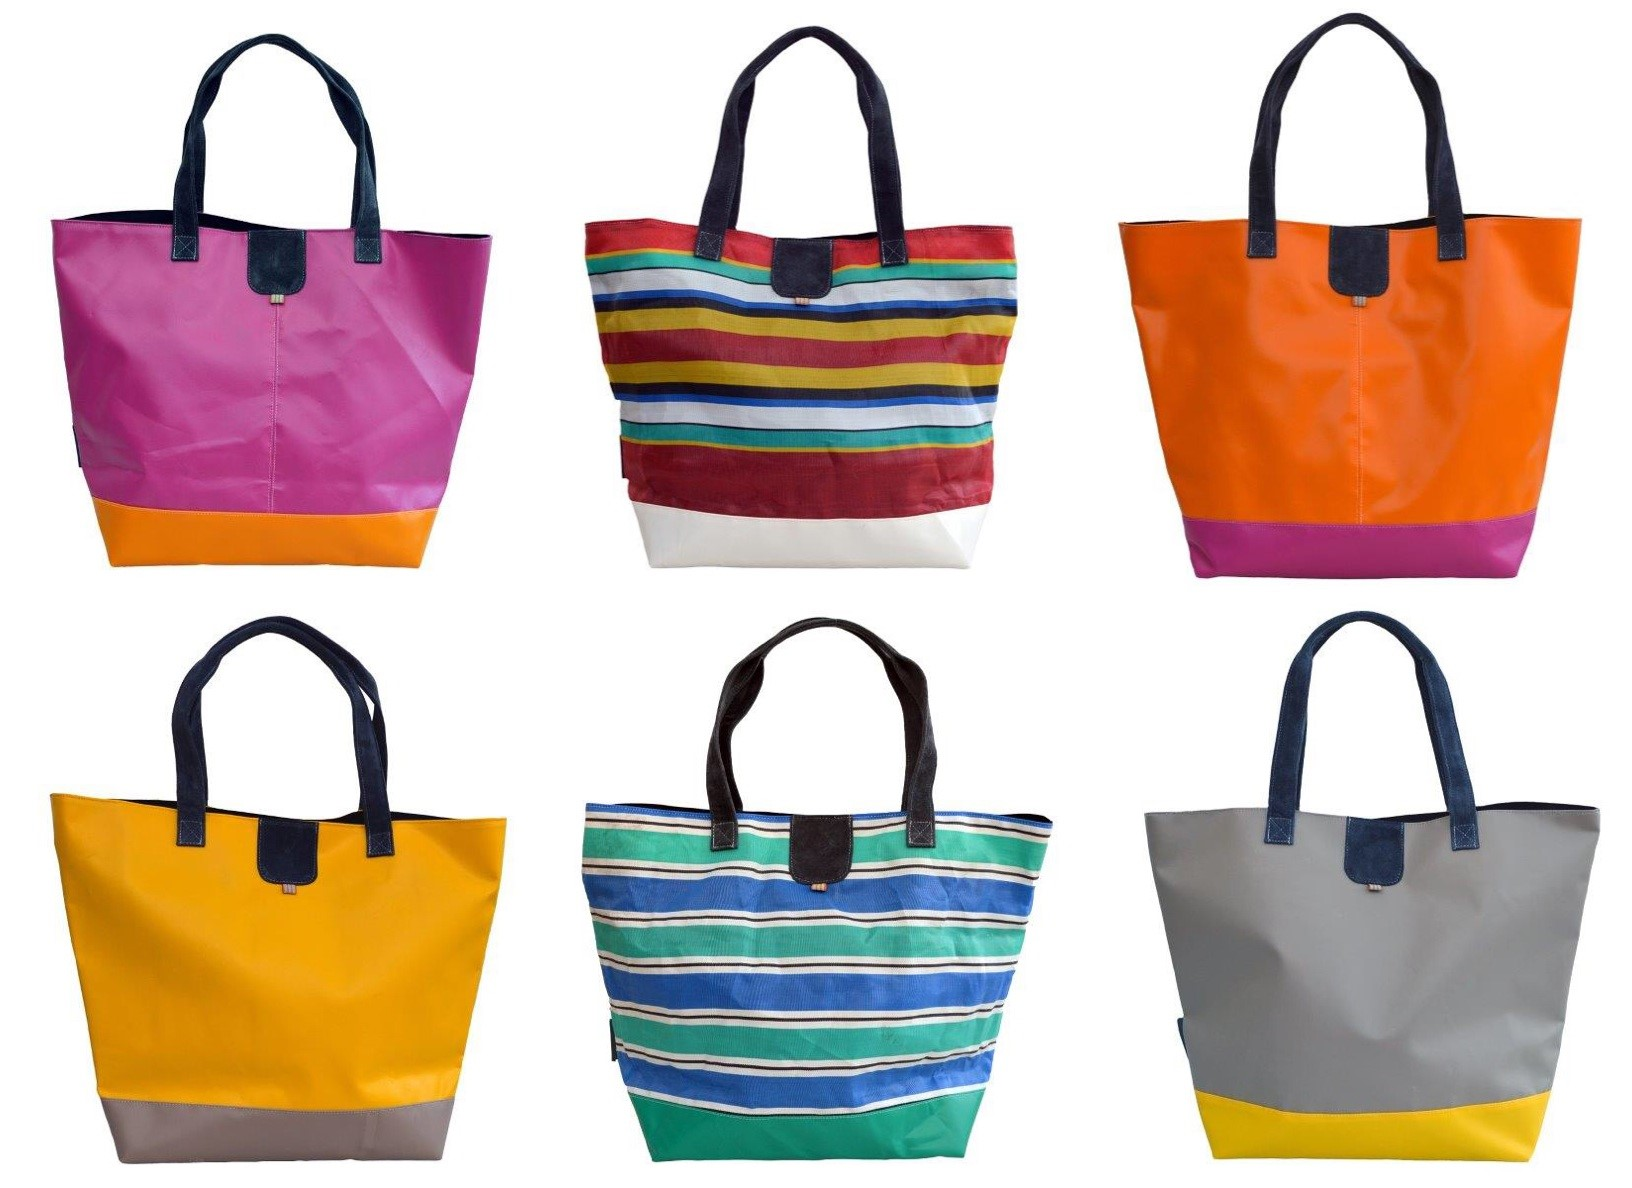 Cool Bags For The Eco-Fashionista